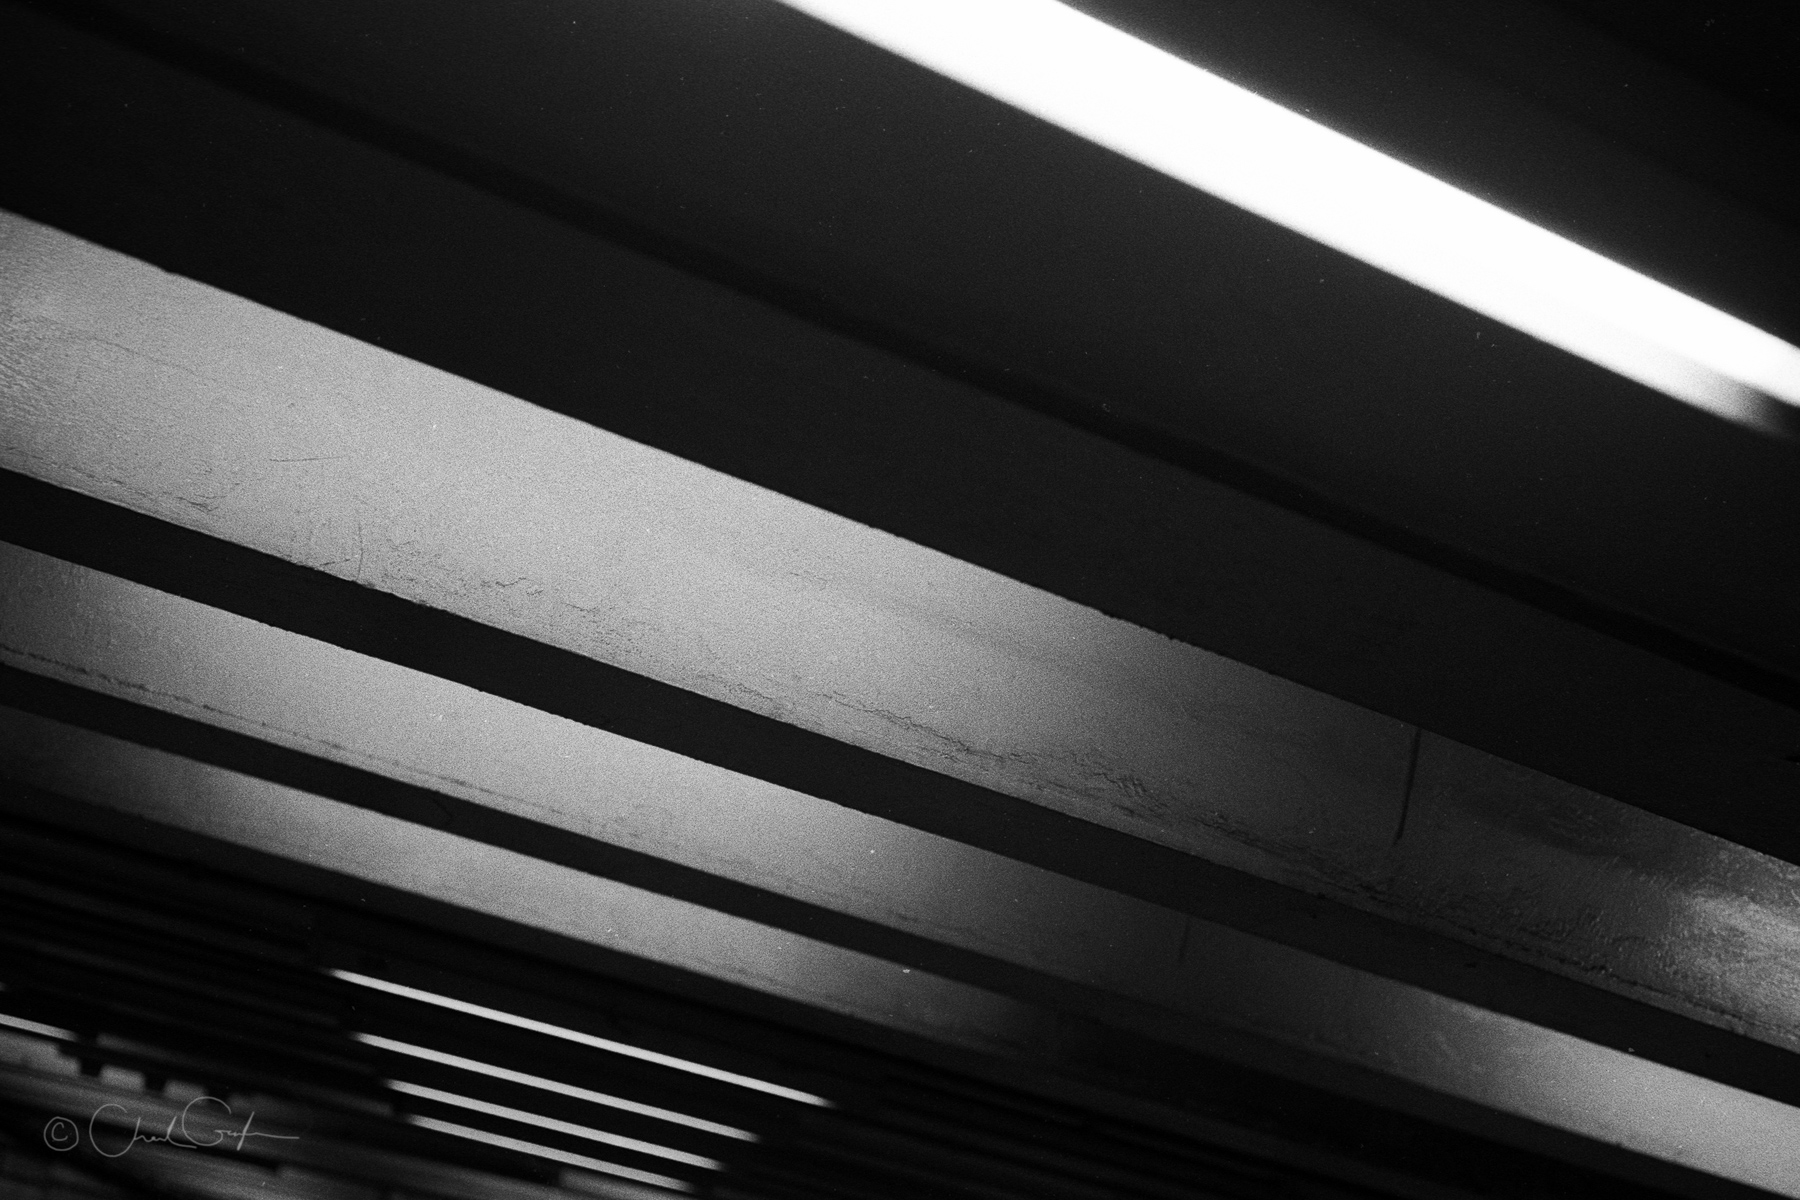 34th Street Subway Tunnel Abstract by Chad Gayle (Image)